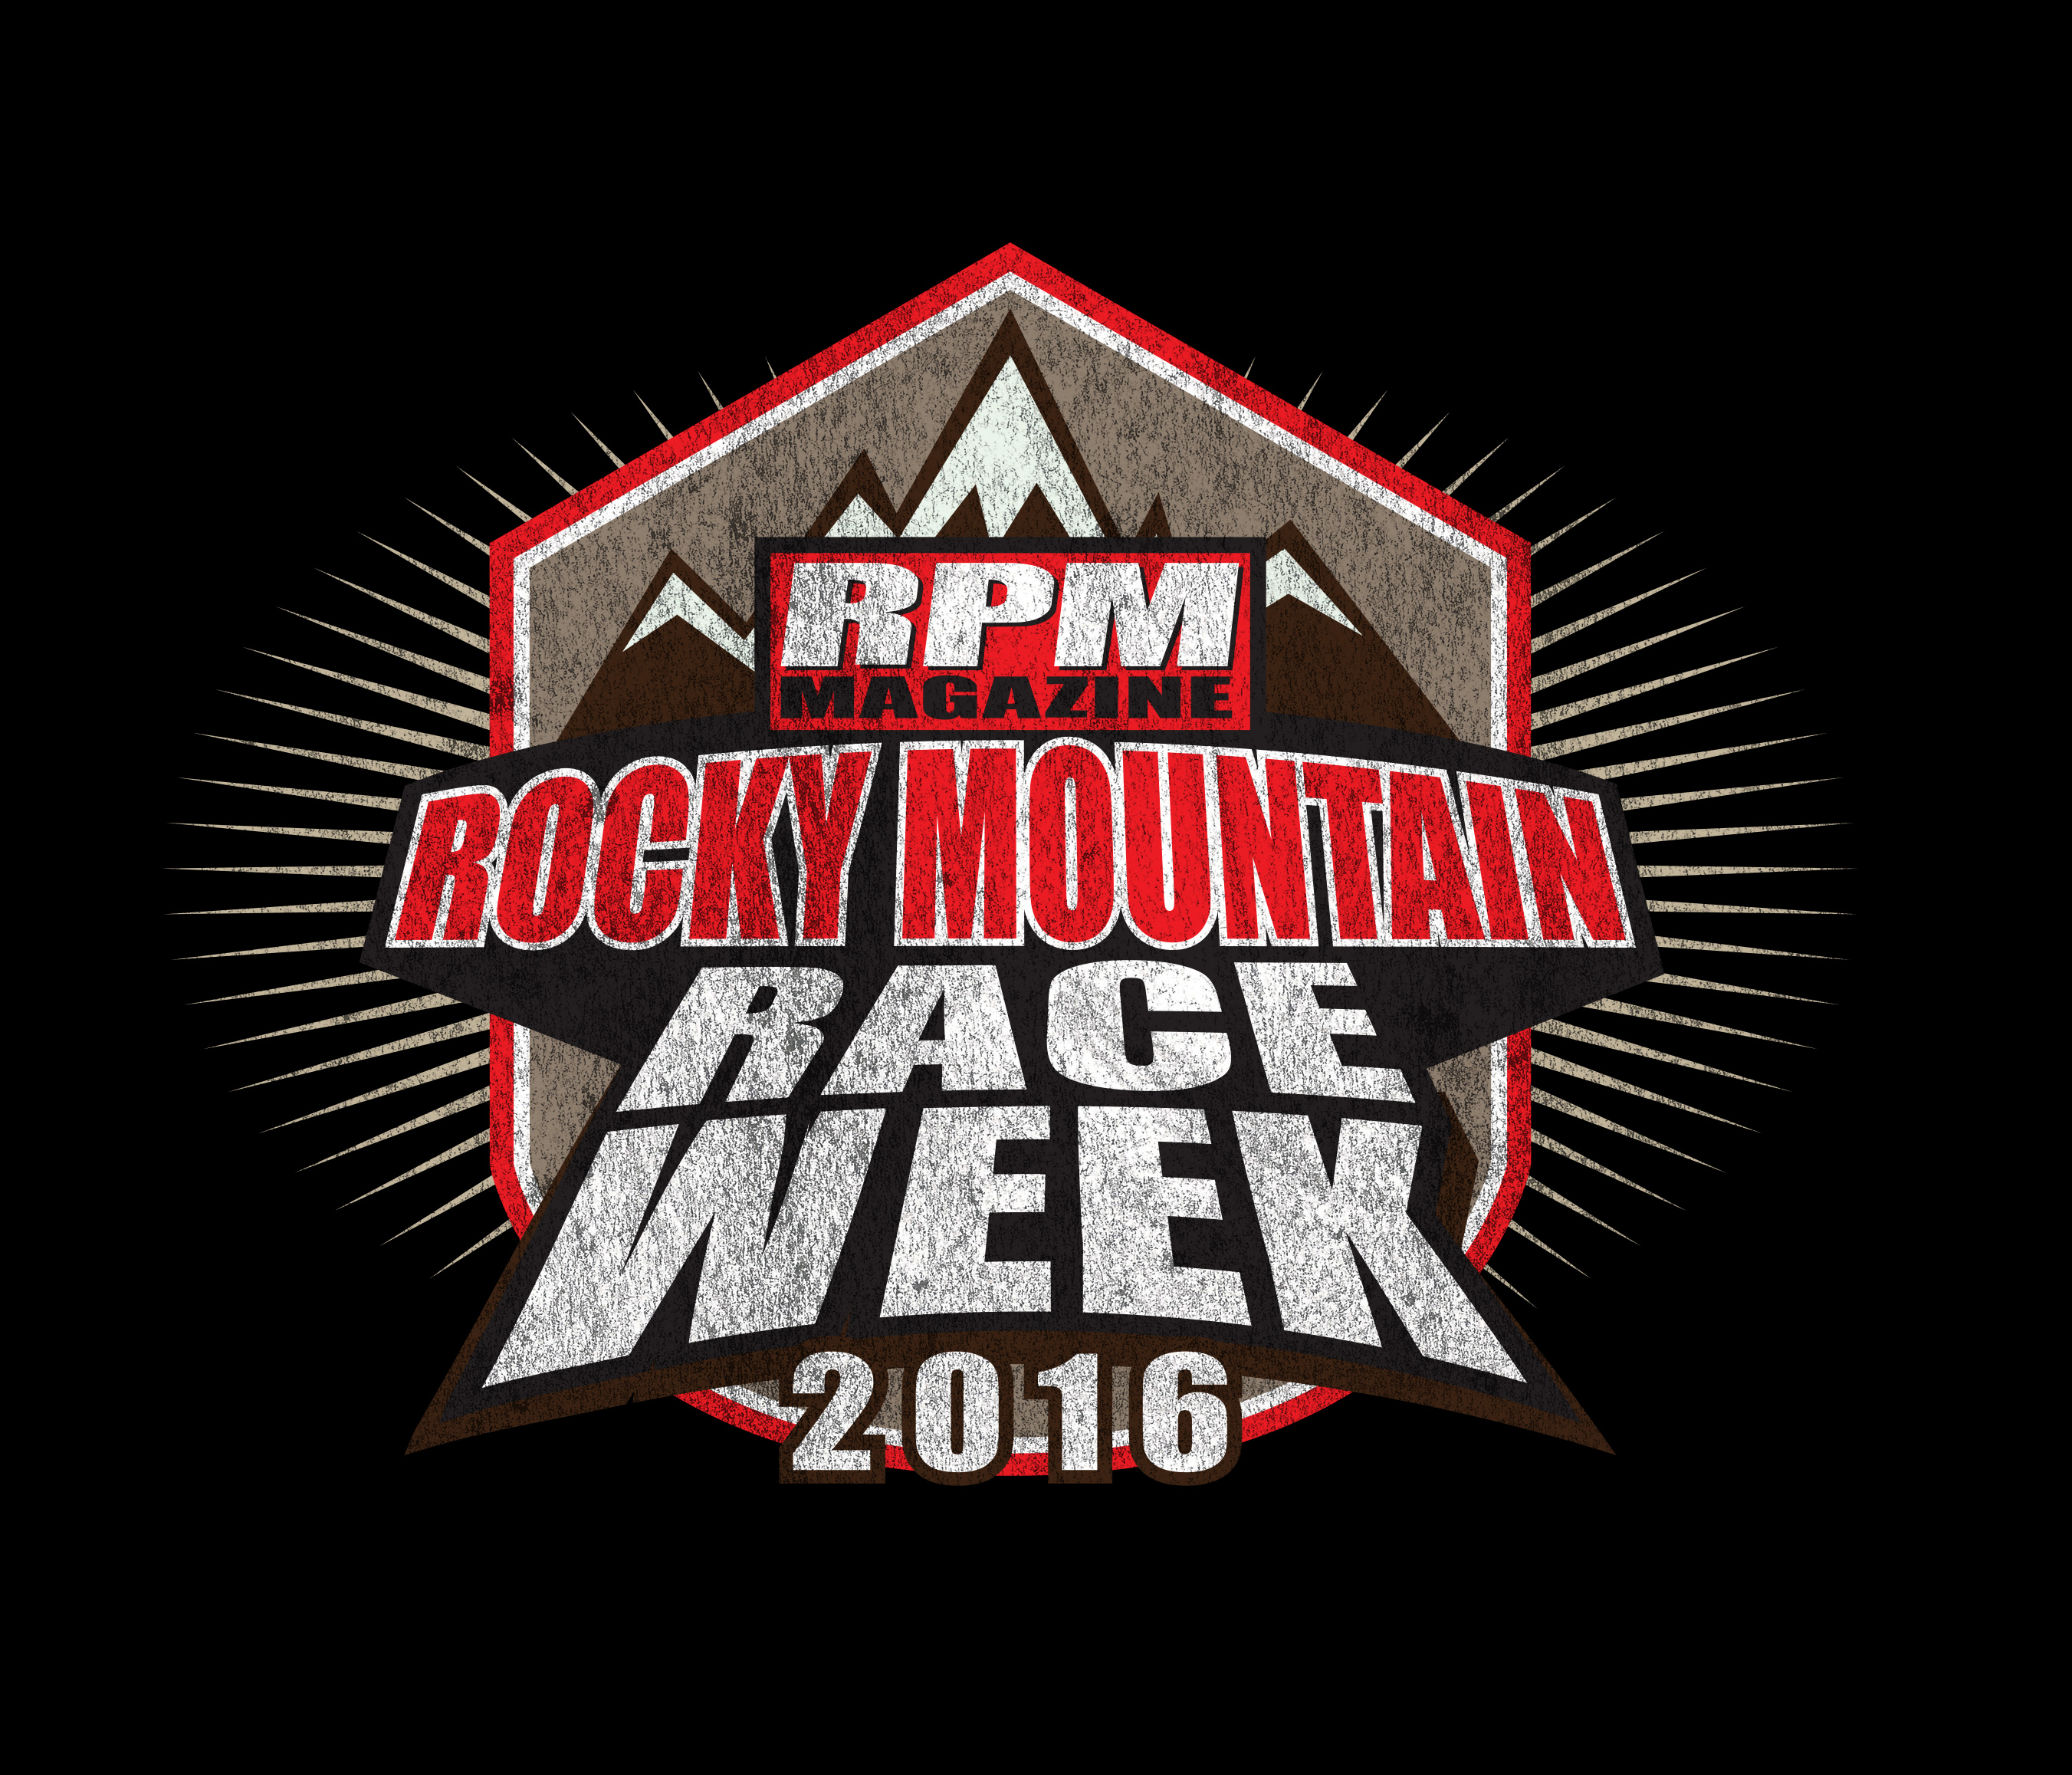 Race OR Cruise! Rocky Mountain Race Week 2016 Registration Opens At Noon Eastern Saturday Feb 13th!